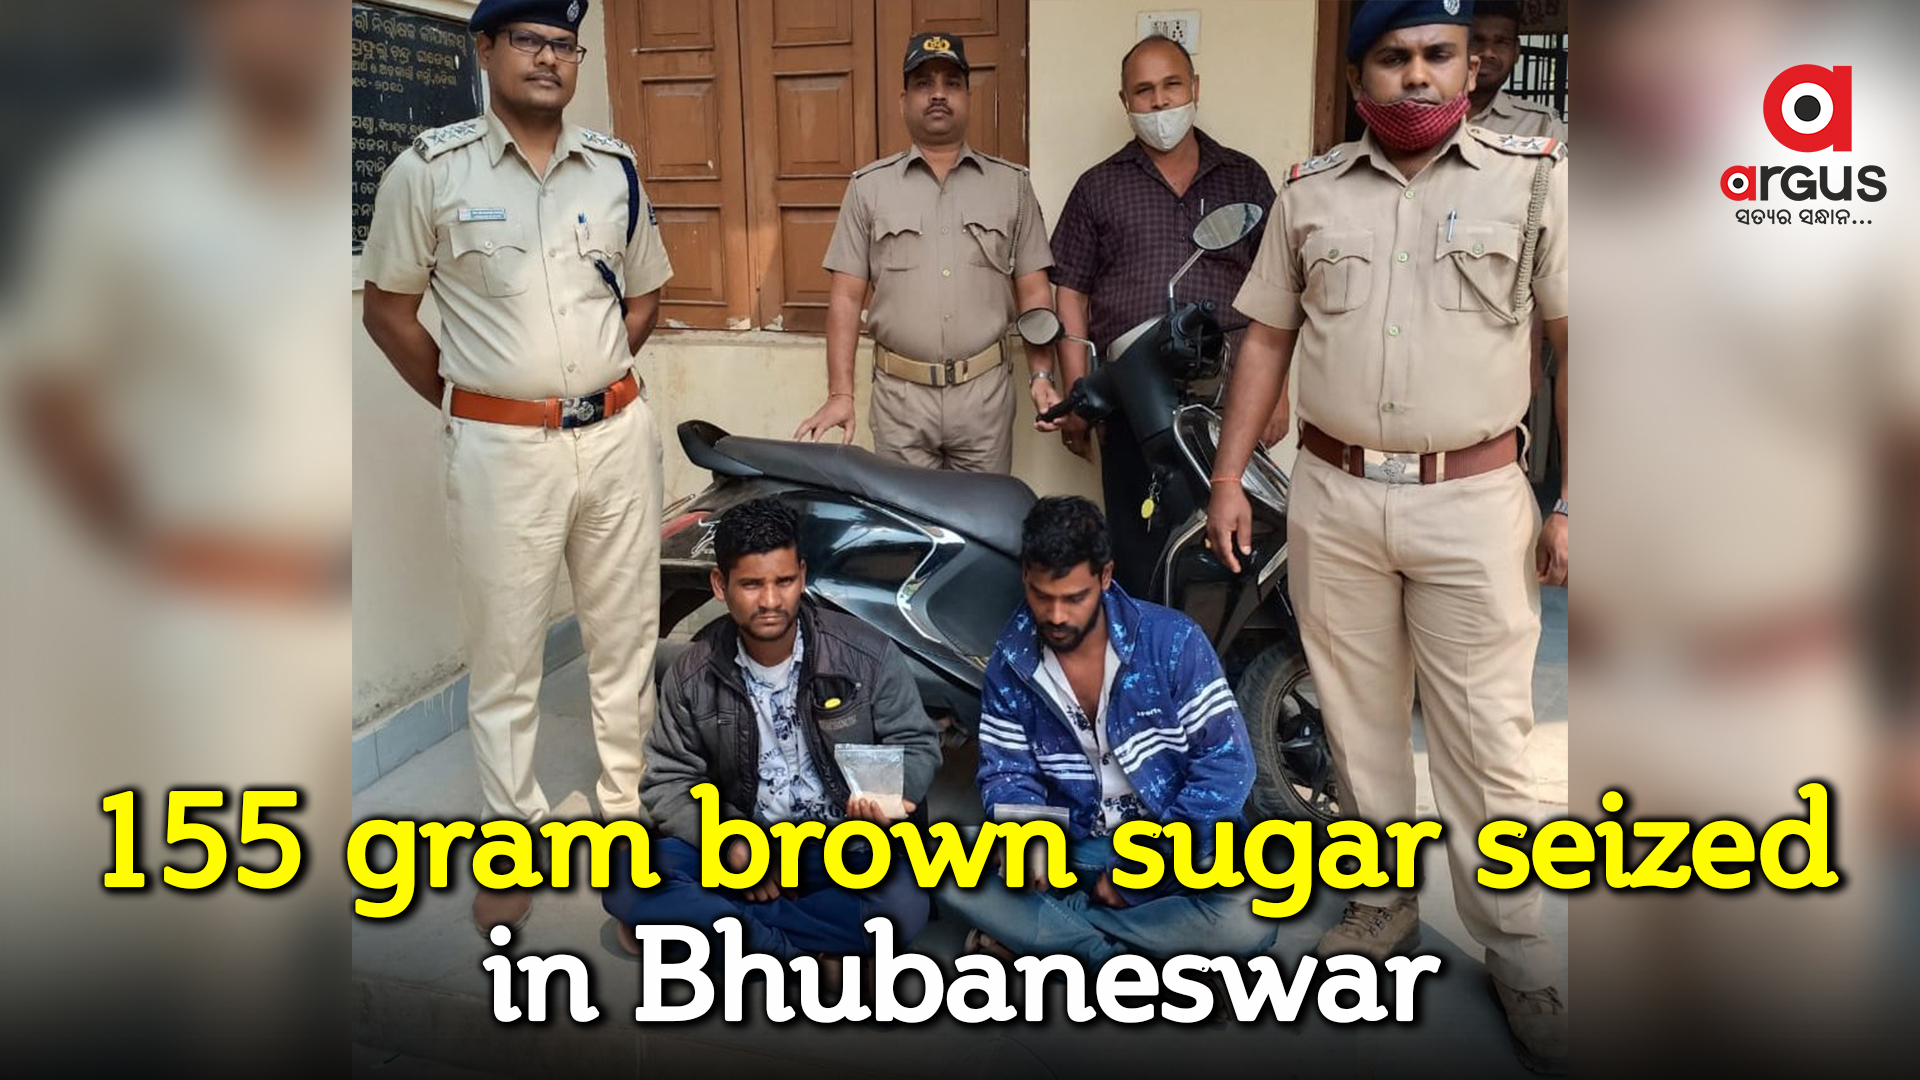 155 gram brown sugar seized in Bhubaneswar; 2 held